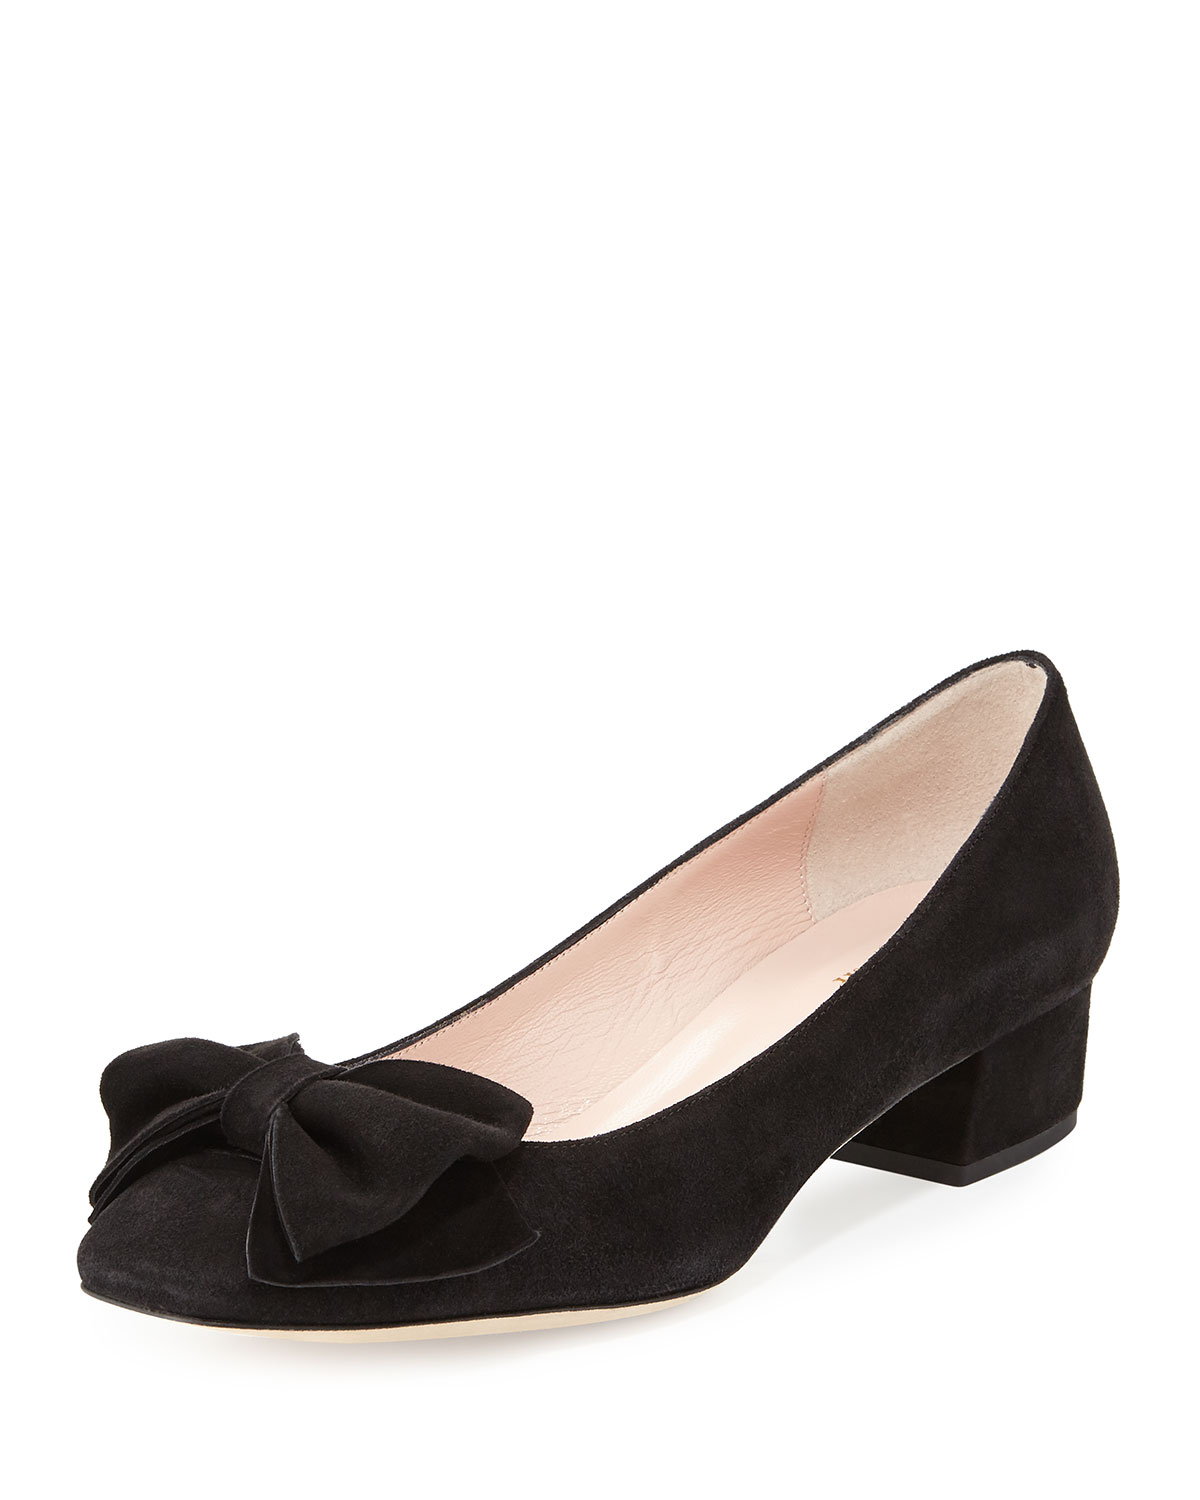 02cb6be24df kate spade new york molly suede low-heel bow pump